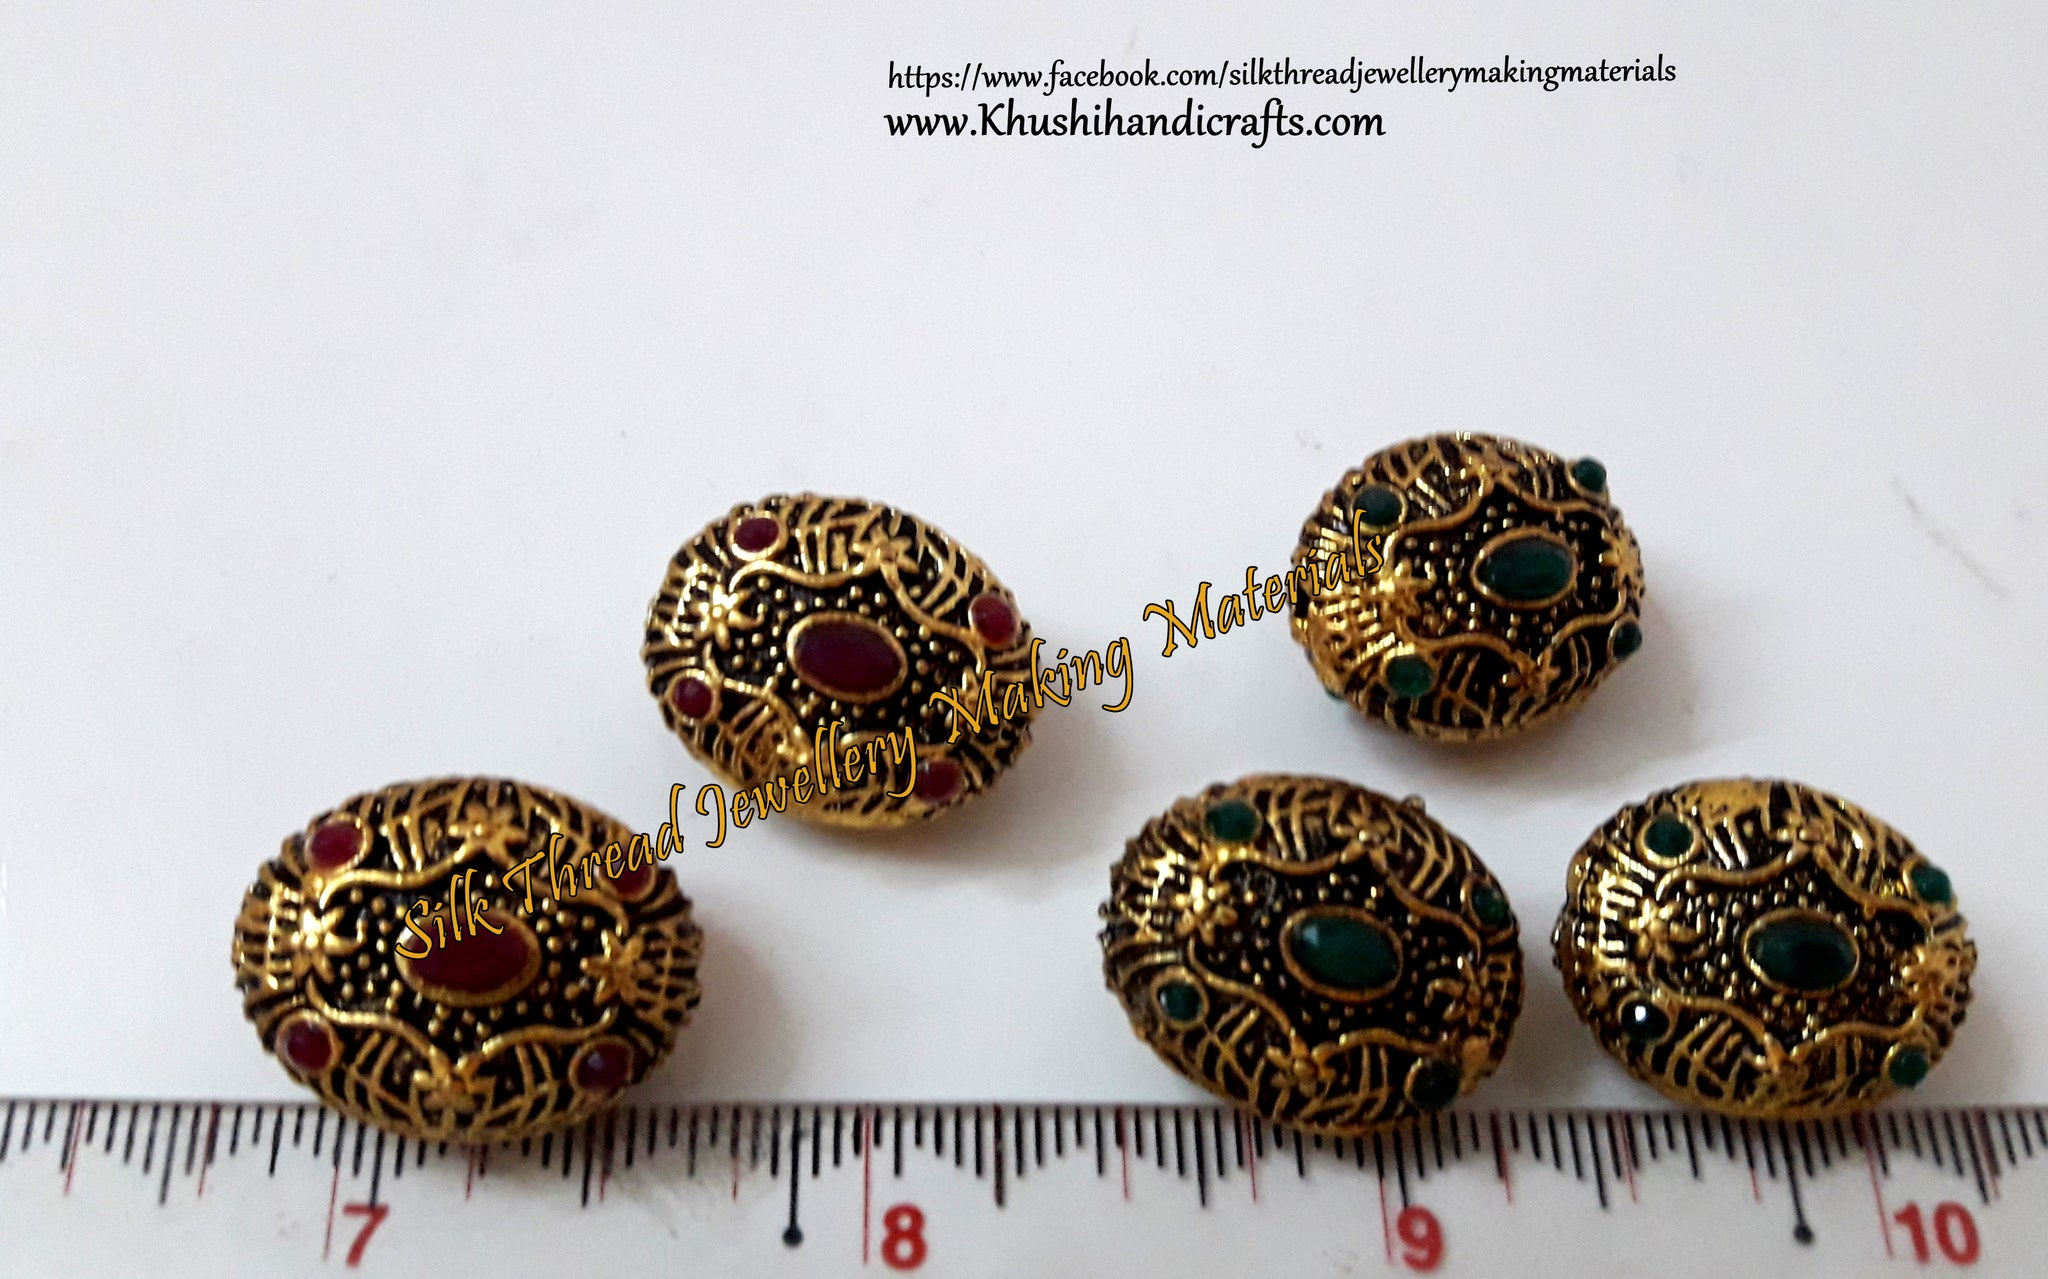 sale for bulk product rondelle fxad beads jewelry crystal glass making china wholesale in detail